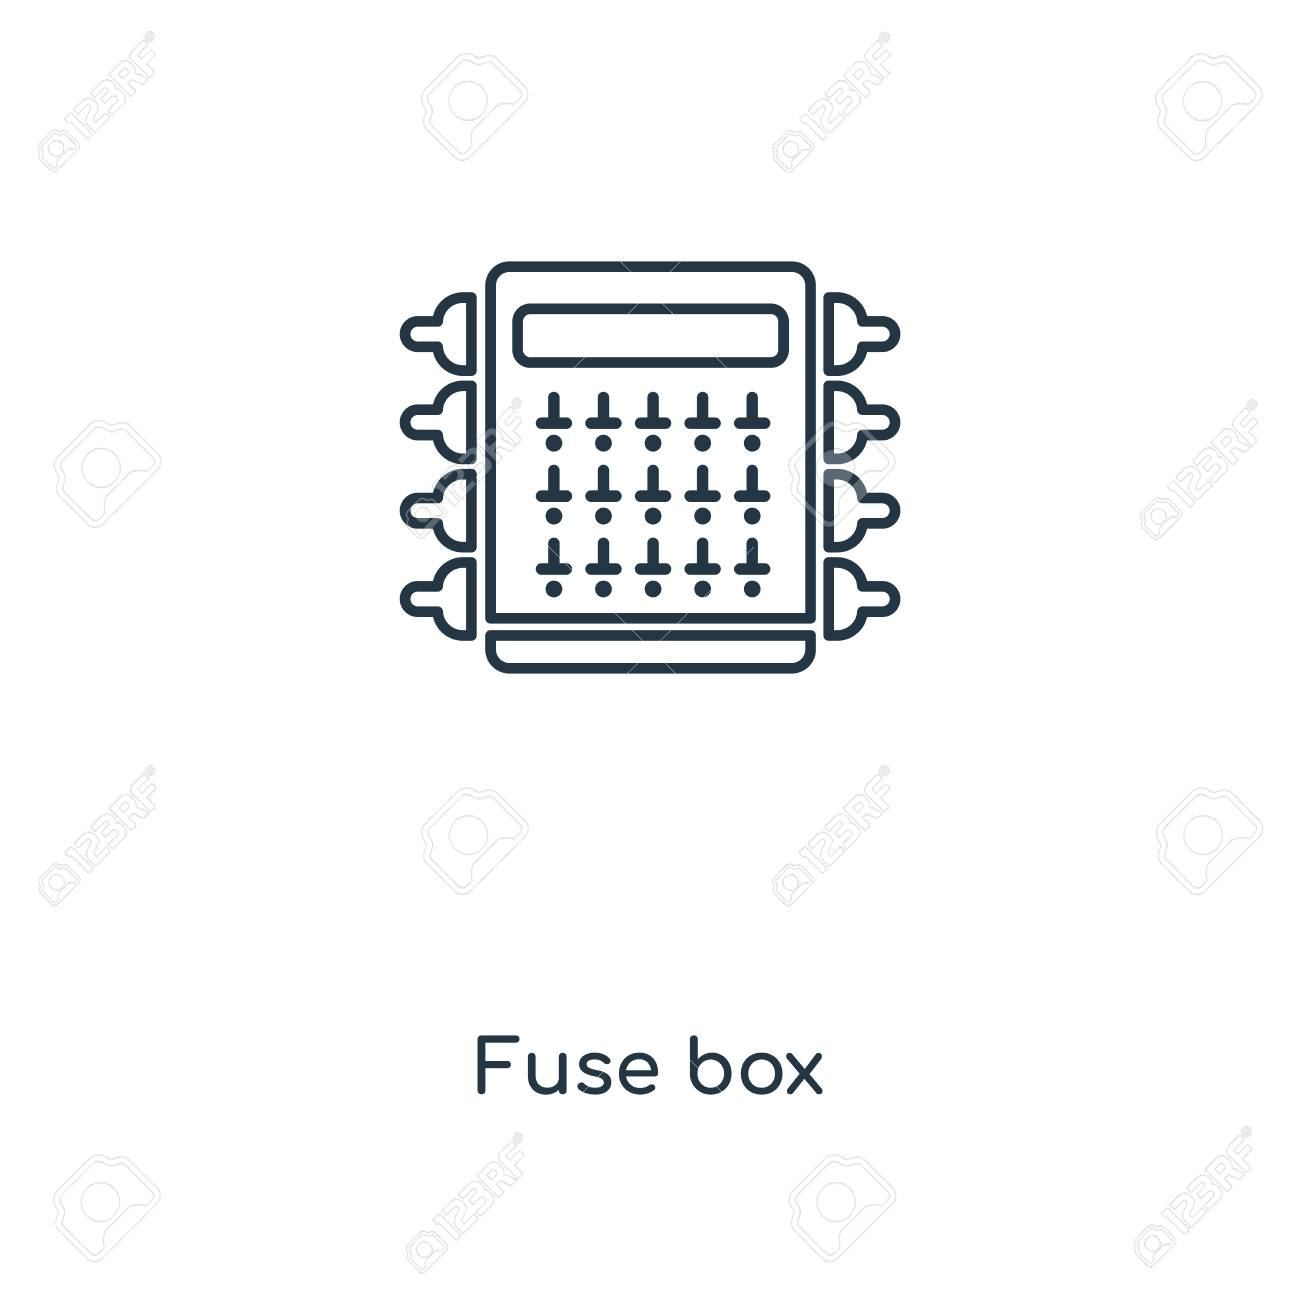 hight resolution of fuse box concept line icon linear fuse box concept outline symbol design this simple